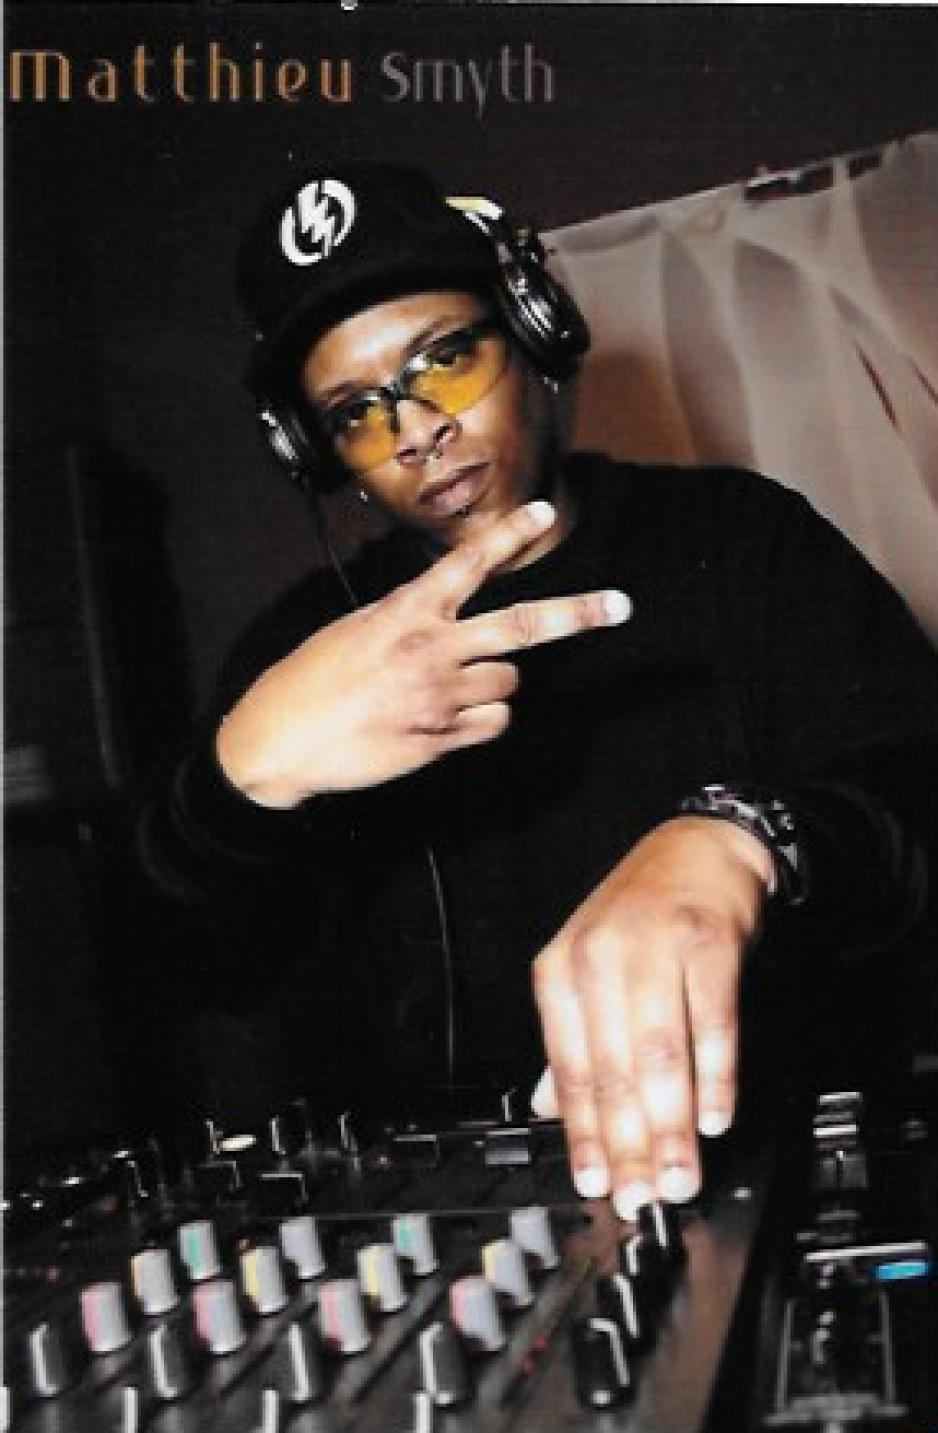 Reggie Manuel at work as DJ Highlander.